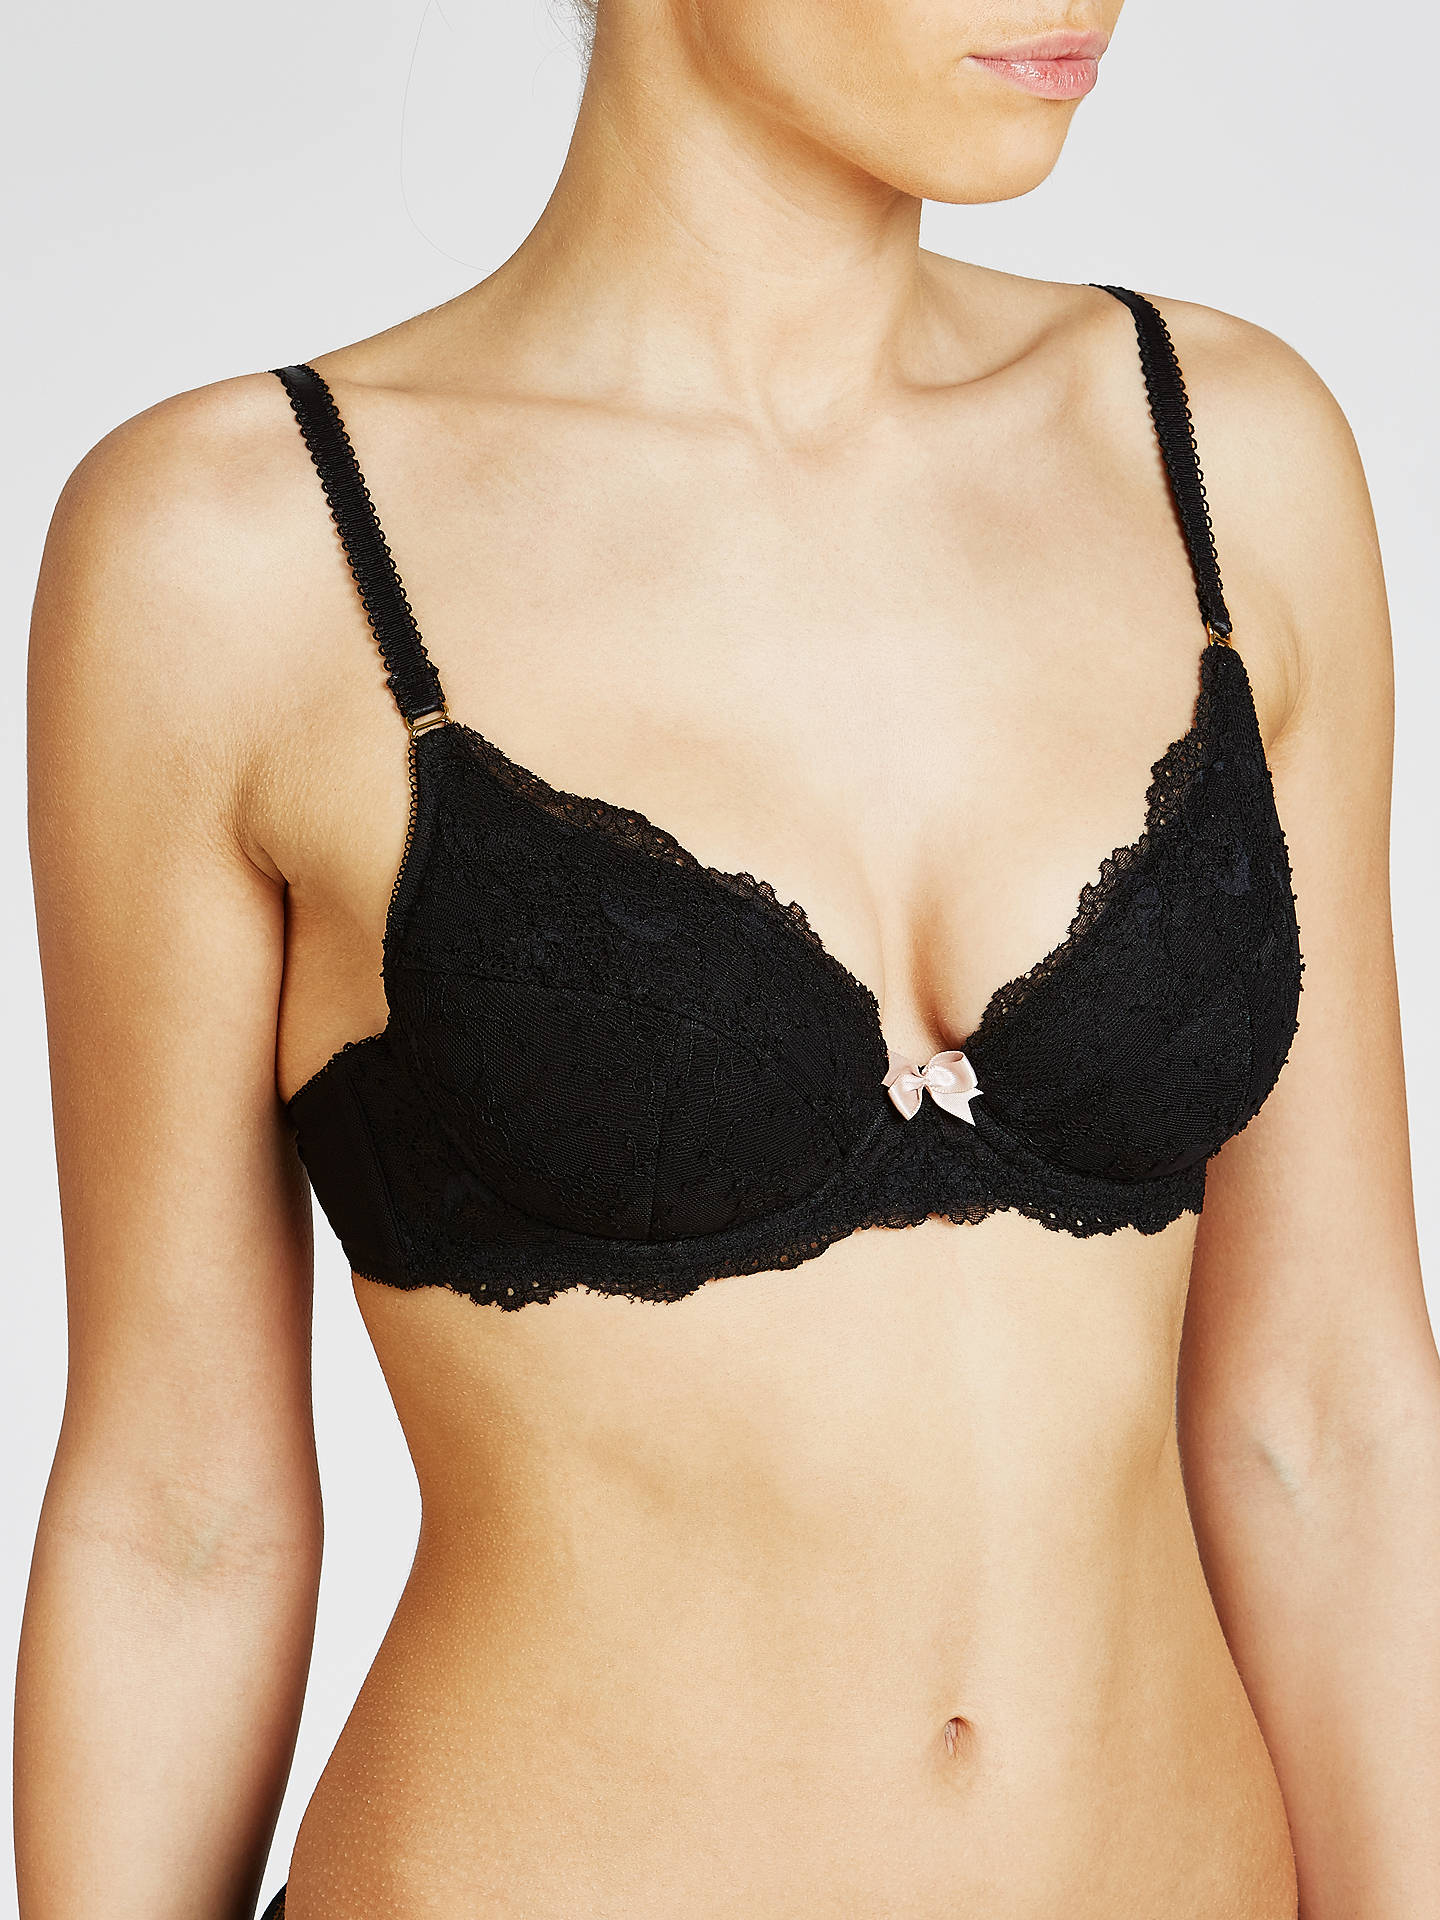 BuyJohn Lewis & Partners Silcone Cleavage Boosters Online at johnlewis.com